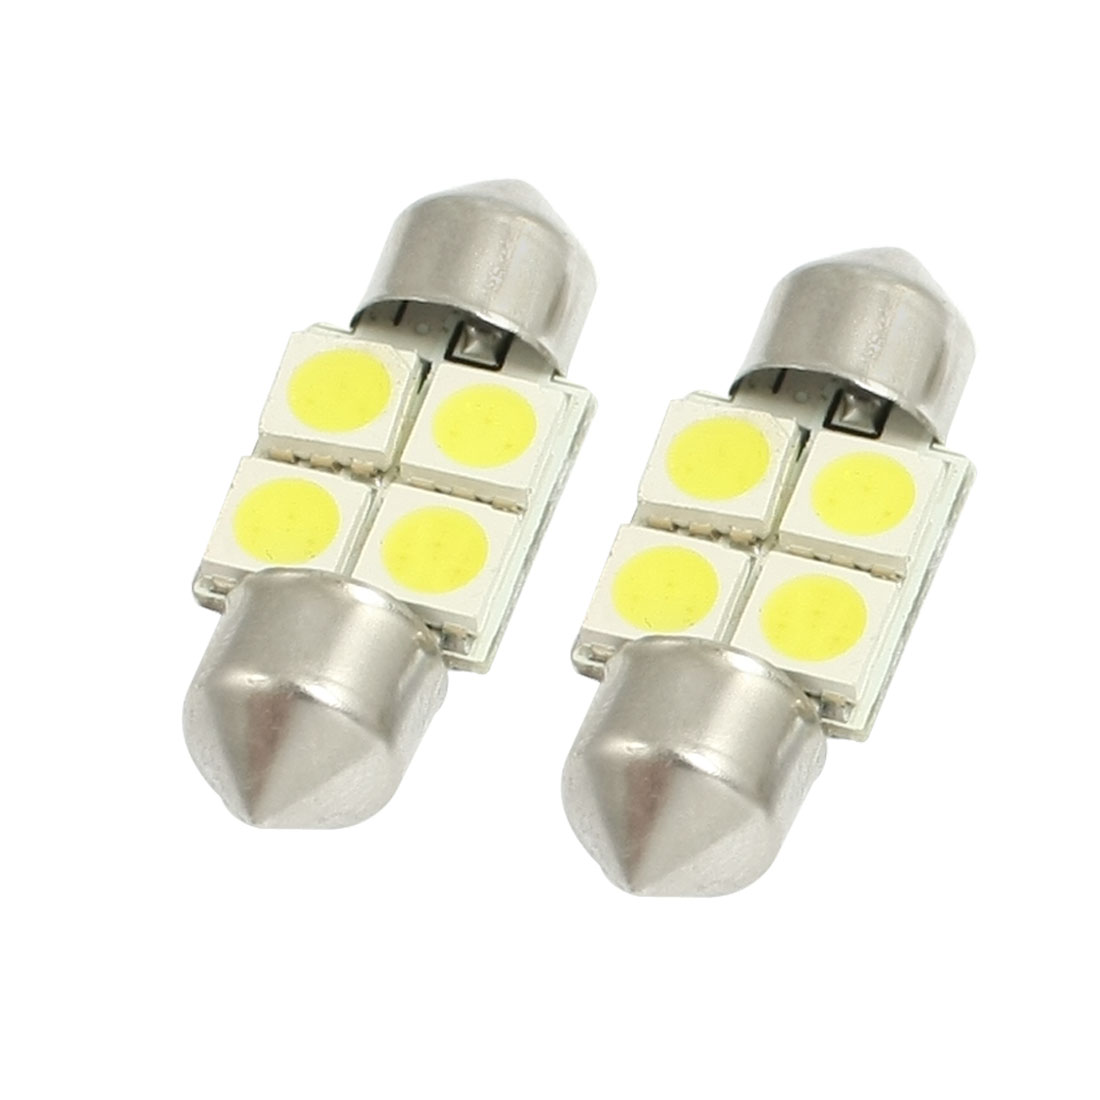 2 Pcs White 31mm 5050-SMD 4 LED Festoon Dome Light Lamp Bulb 12V